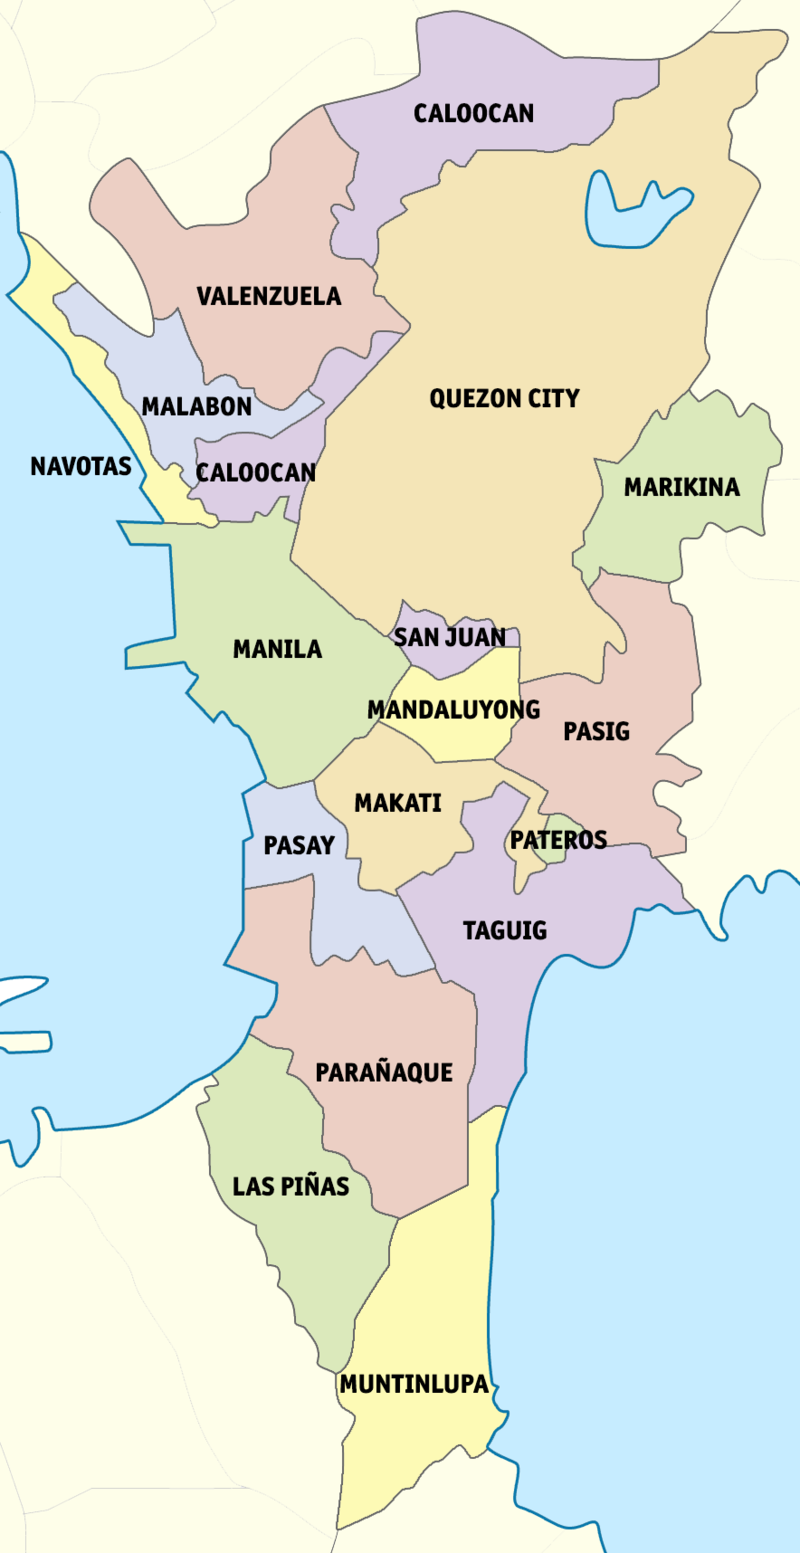 The MMDA is mandated by its charter, Republic Act 7924 to formulate, implement and coordinate activities to ensure public safety especially those pertaining to emergencies in Metro Manila. (Photo: Adkranz/ Wikipedia)